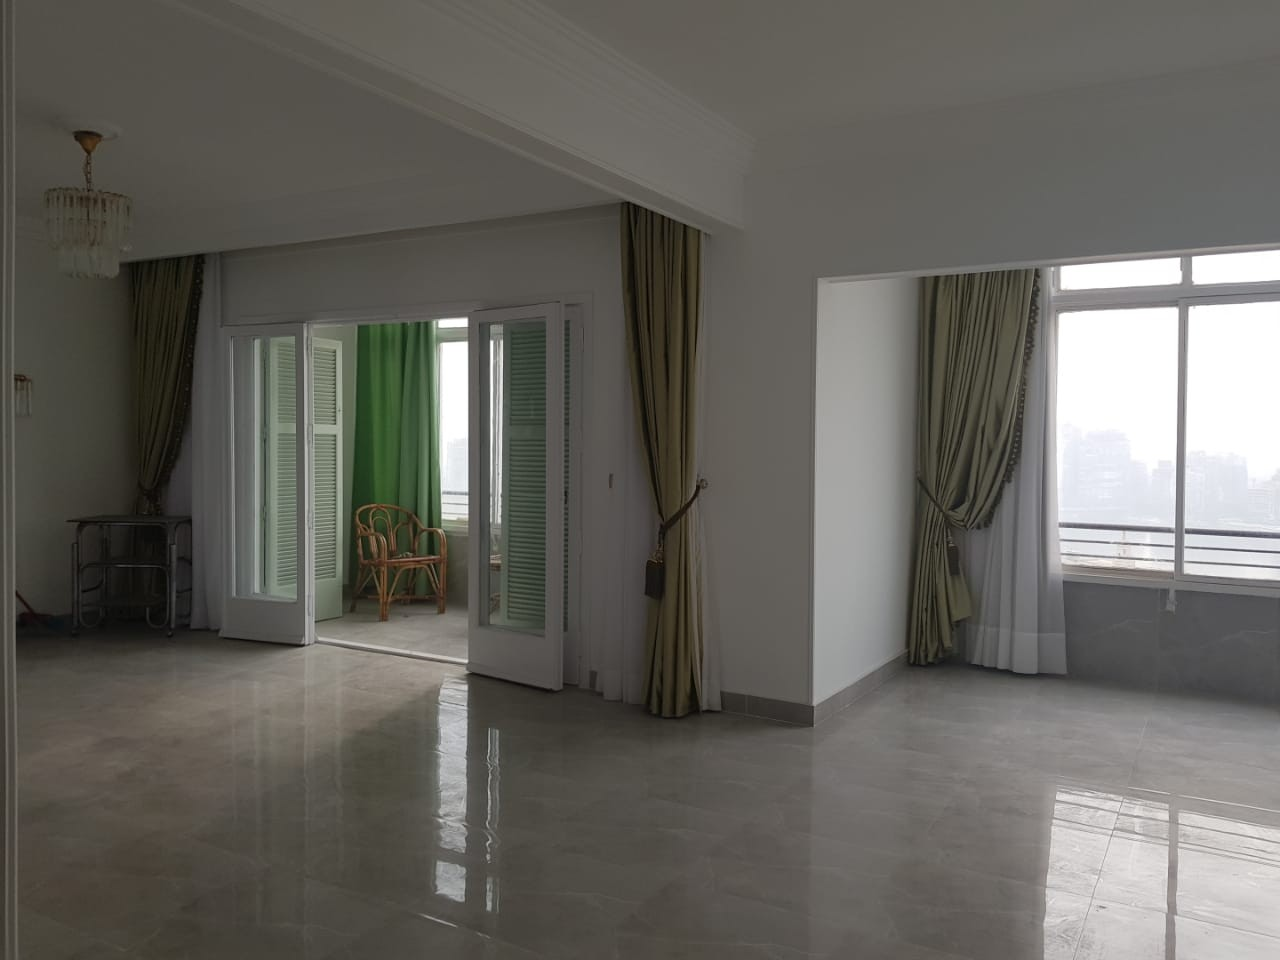 Tremendous Garden City Semi Furnished Apartment For Rent Located In Cornich El Maadi - 4890 Featured Image